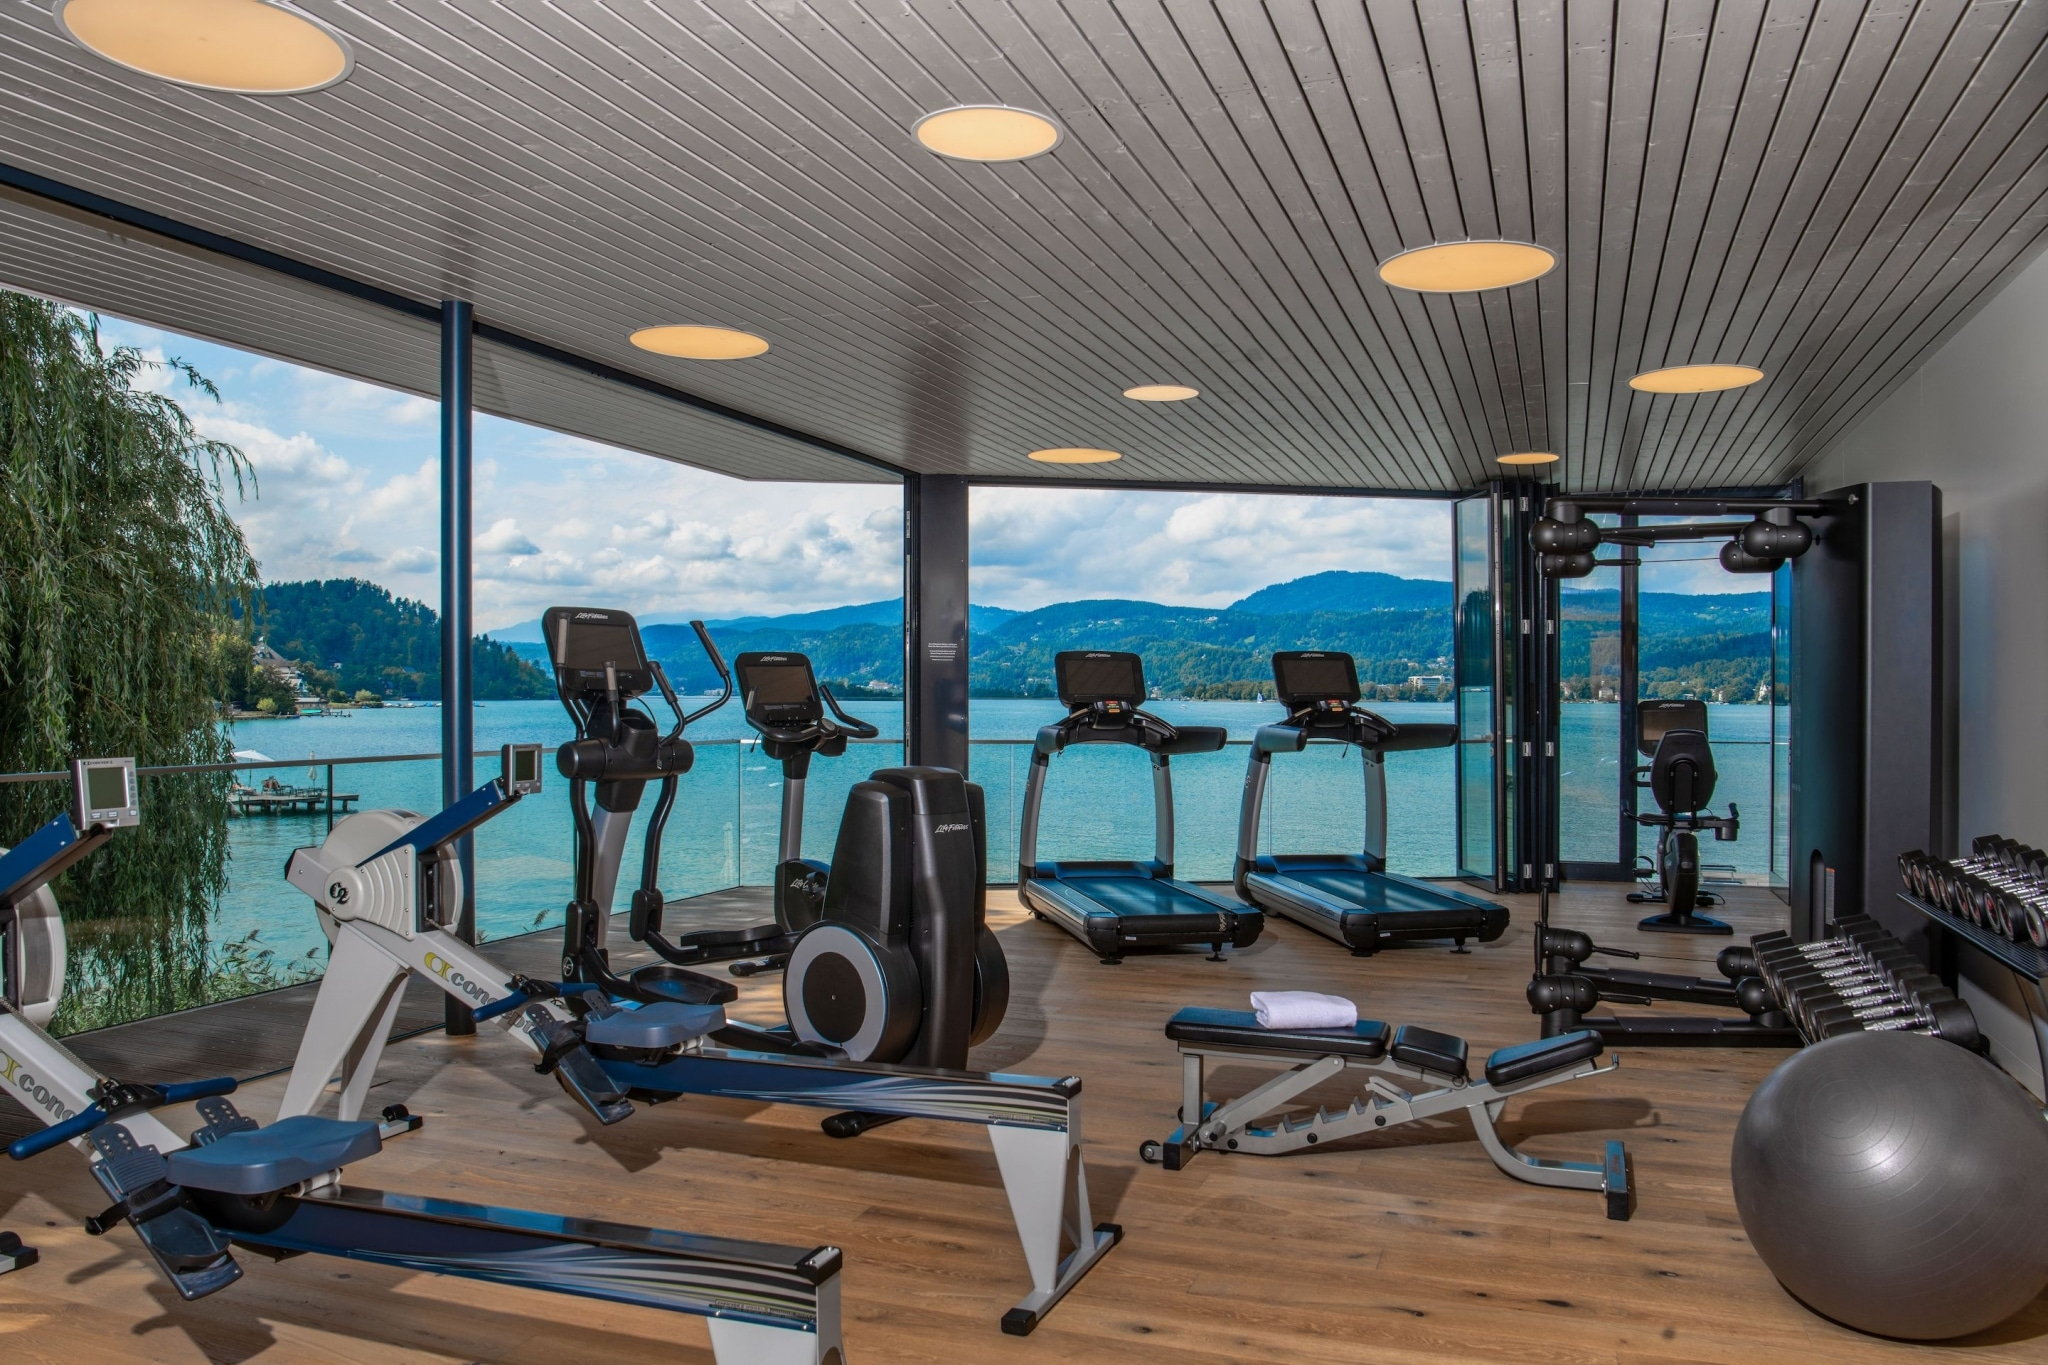 High quality gym with lots of equipment overlooking the lake Wörthersee